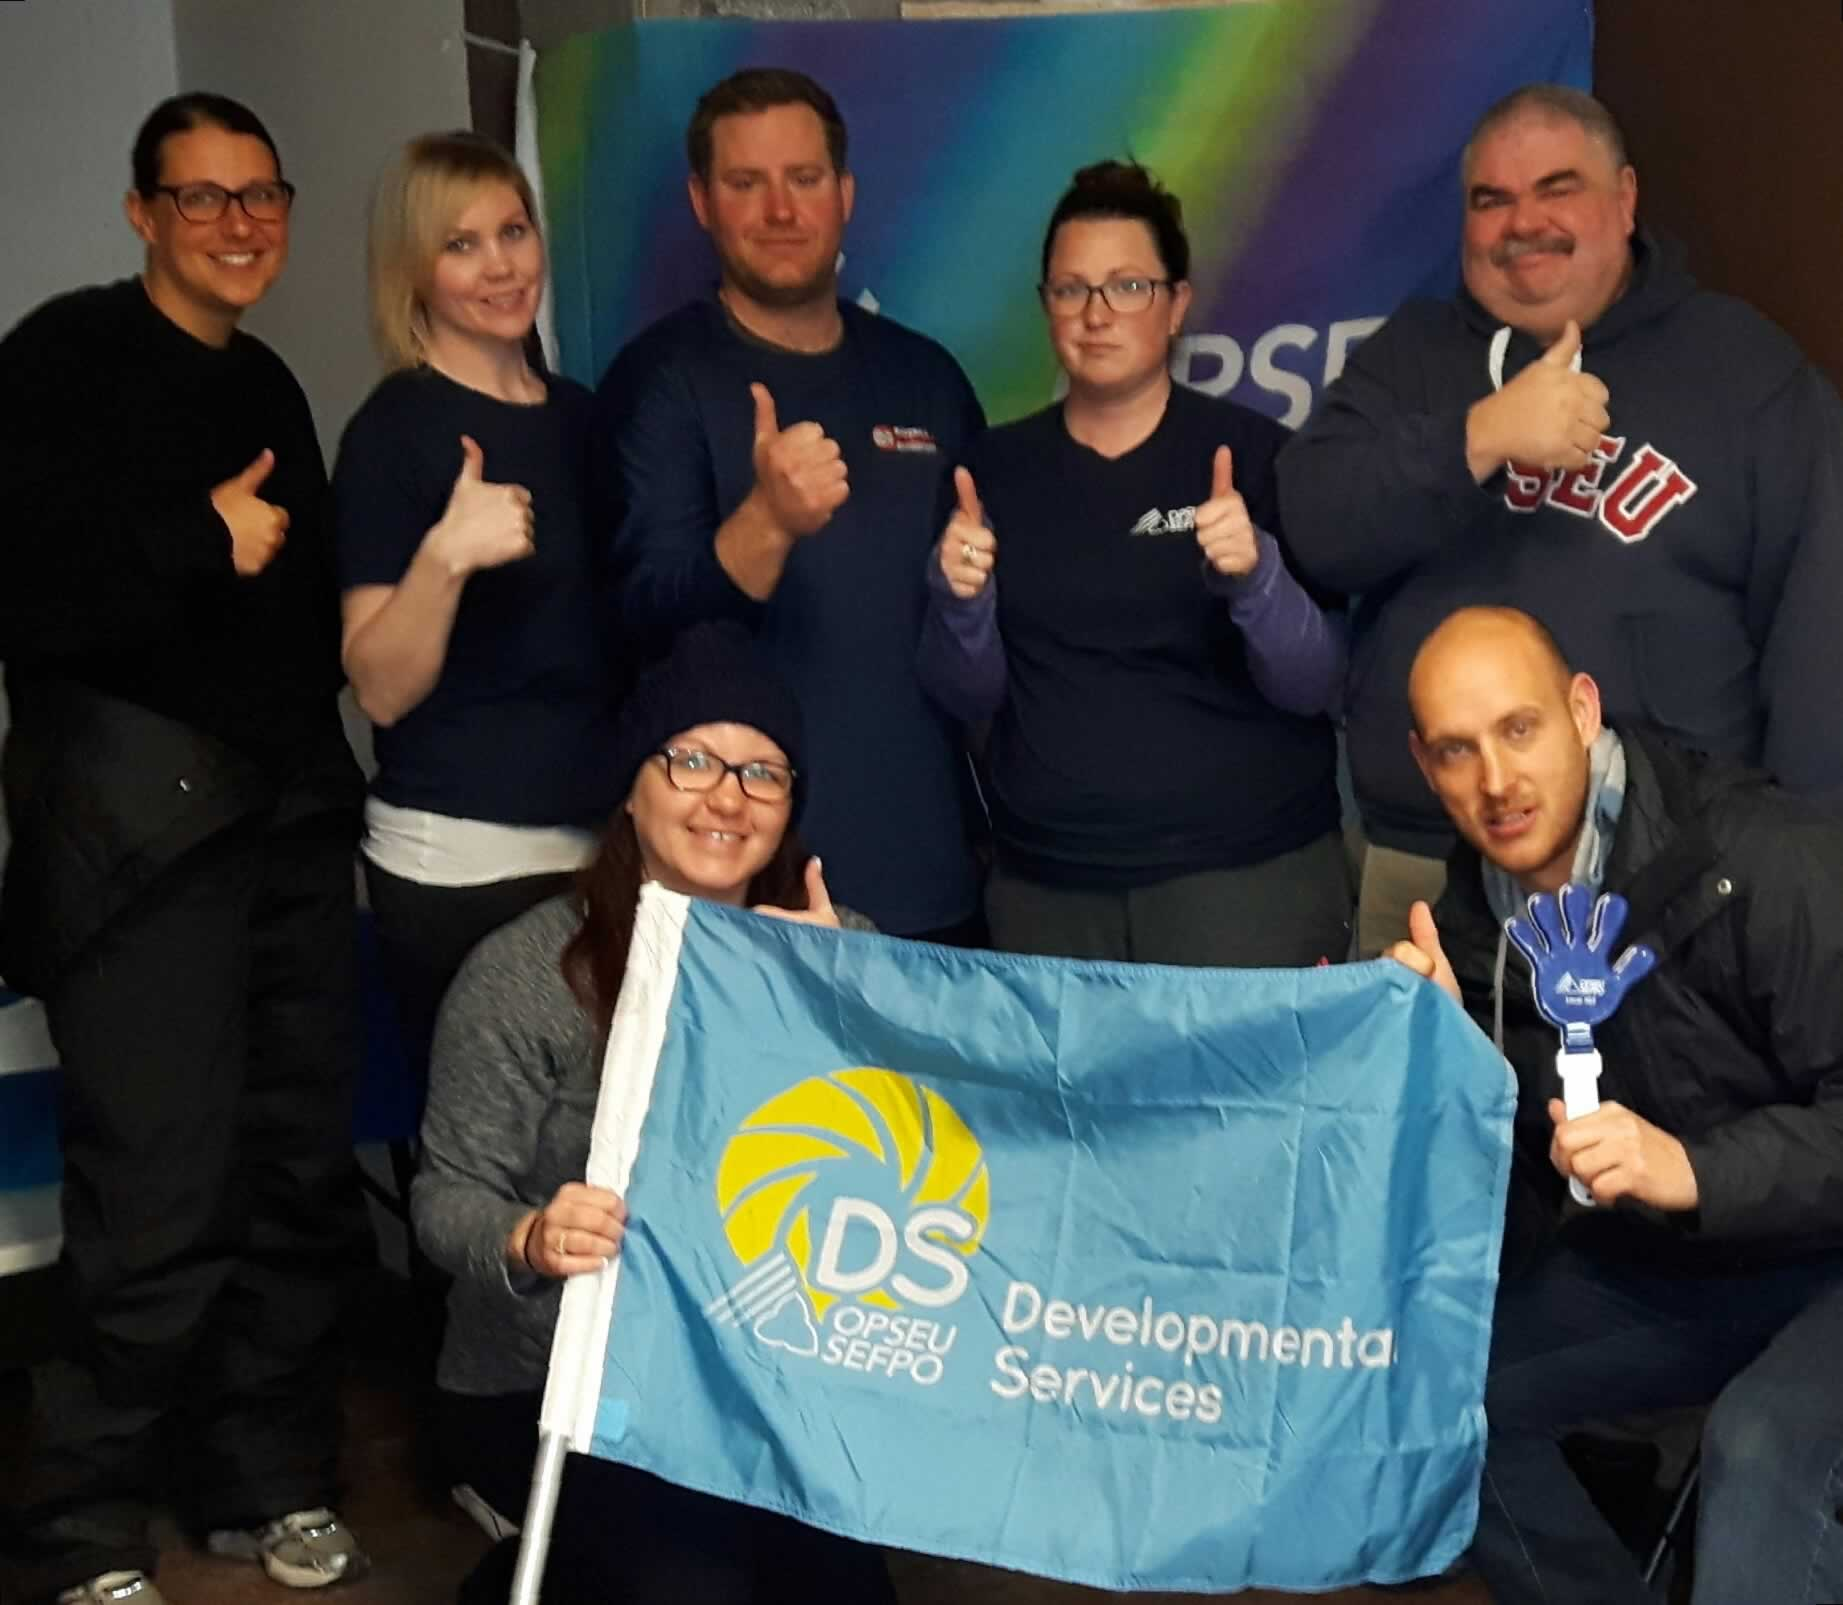 Members of the Local 316 bargaining team hold OPSEU Developmental Services flag and give thumbs-up.